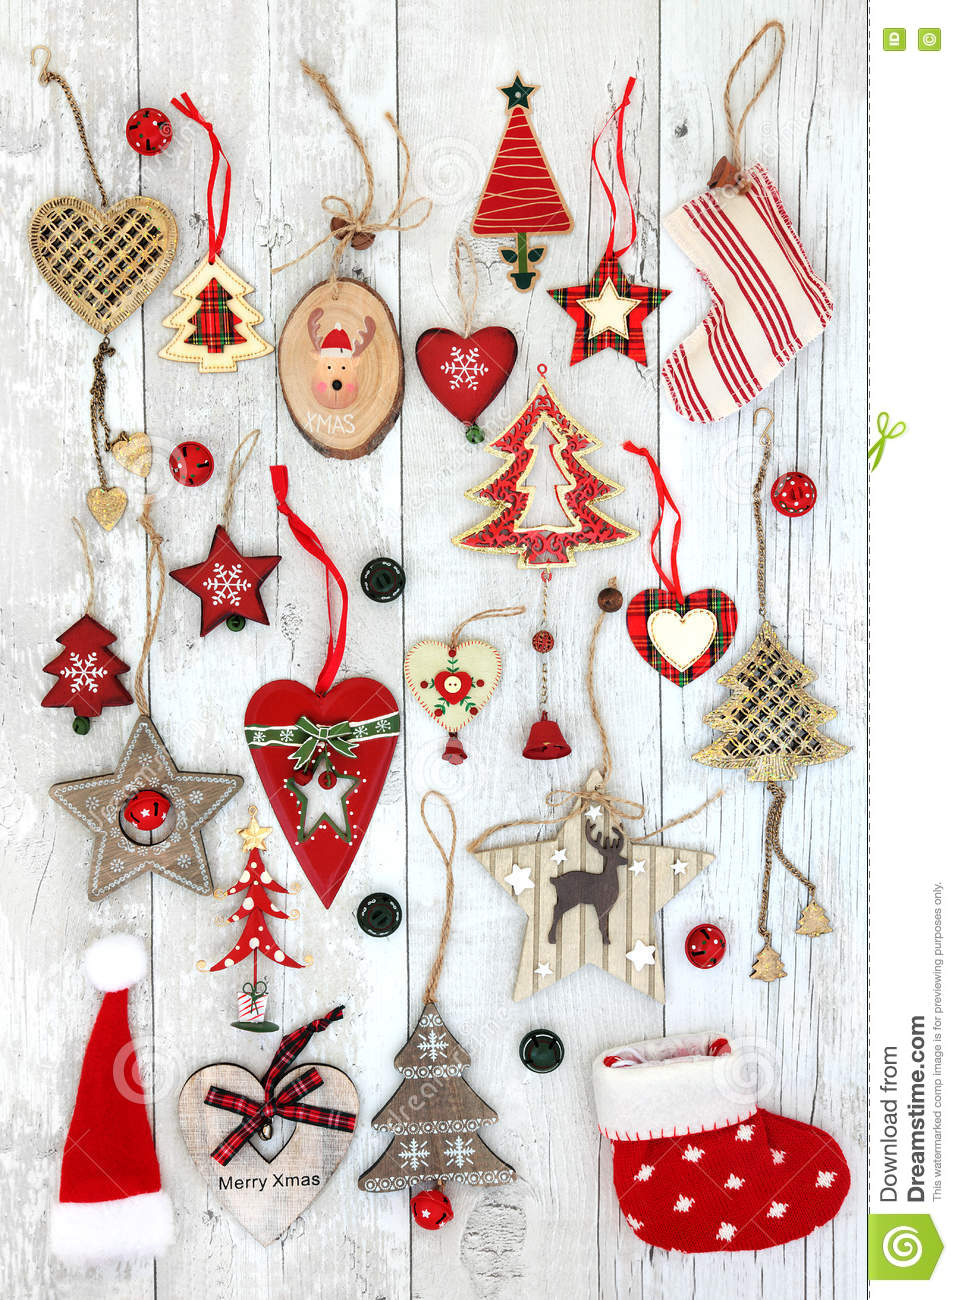 Christmas Tree Decorations Abstract Background Stock Image ...